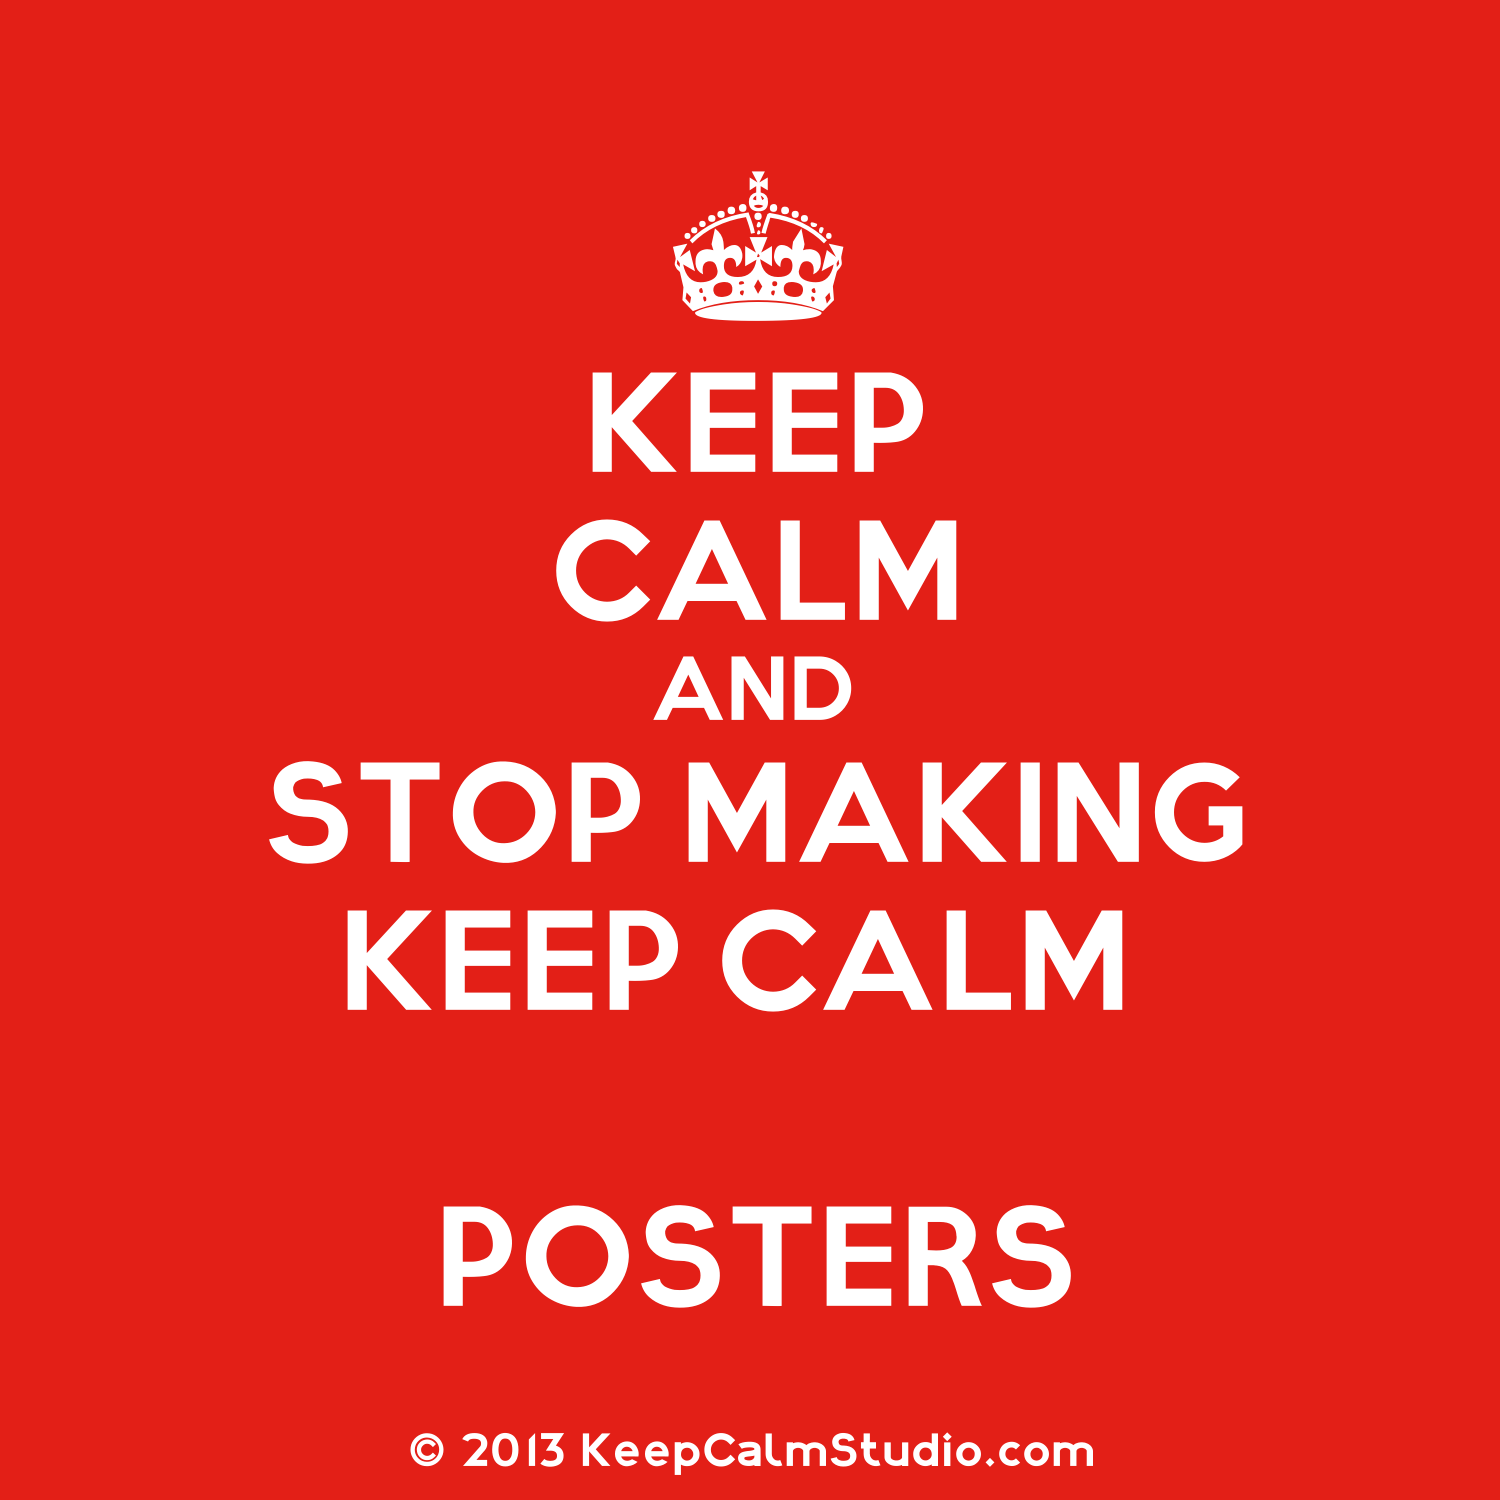 keep calm posters keep calm and stop making keep calm posters